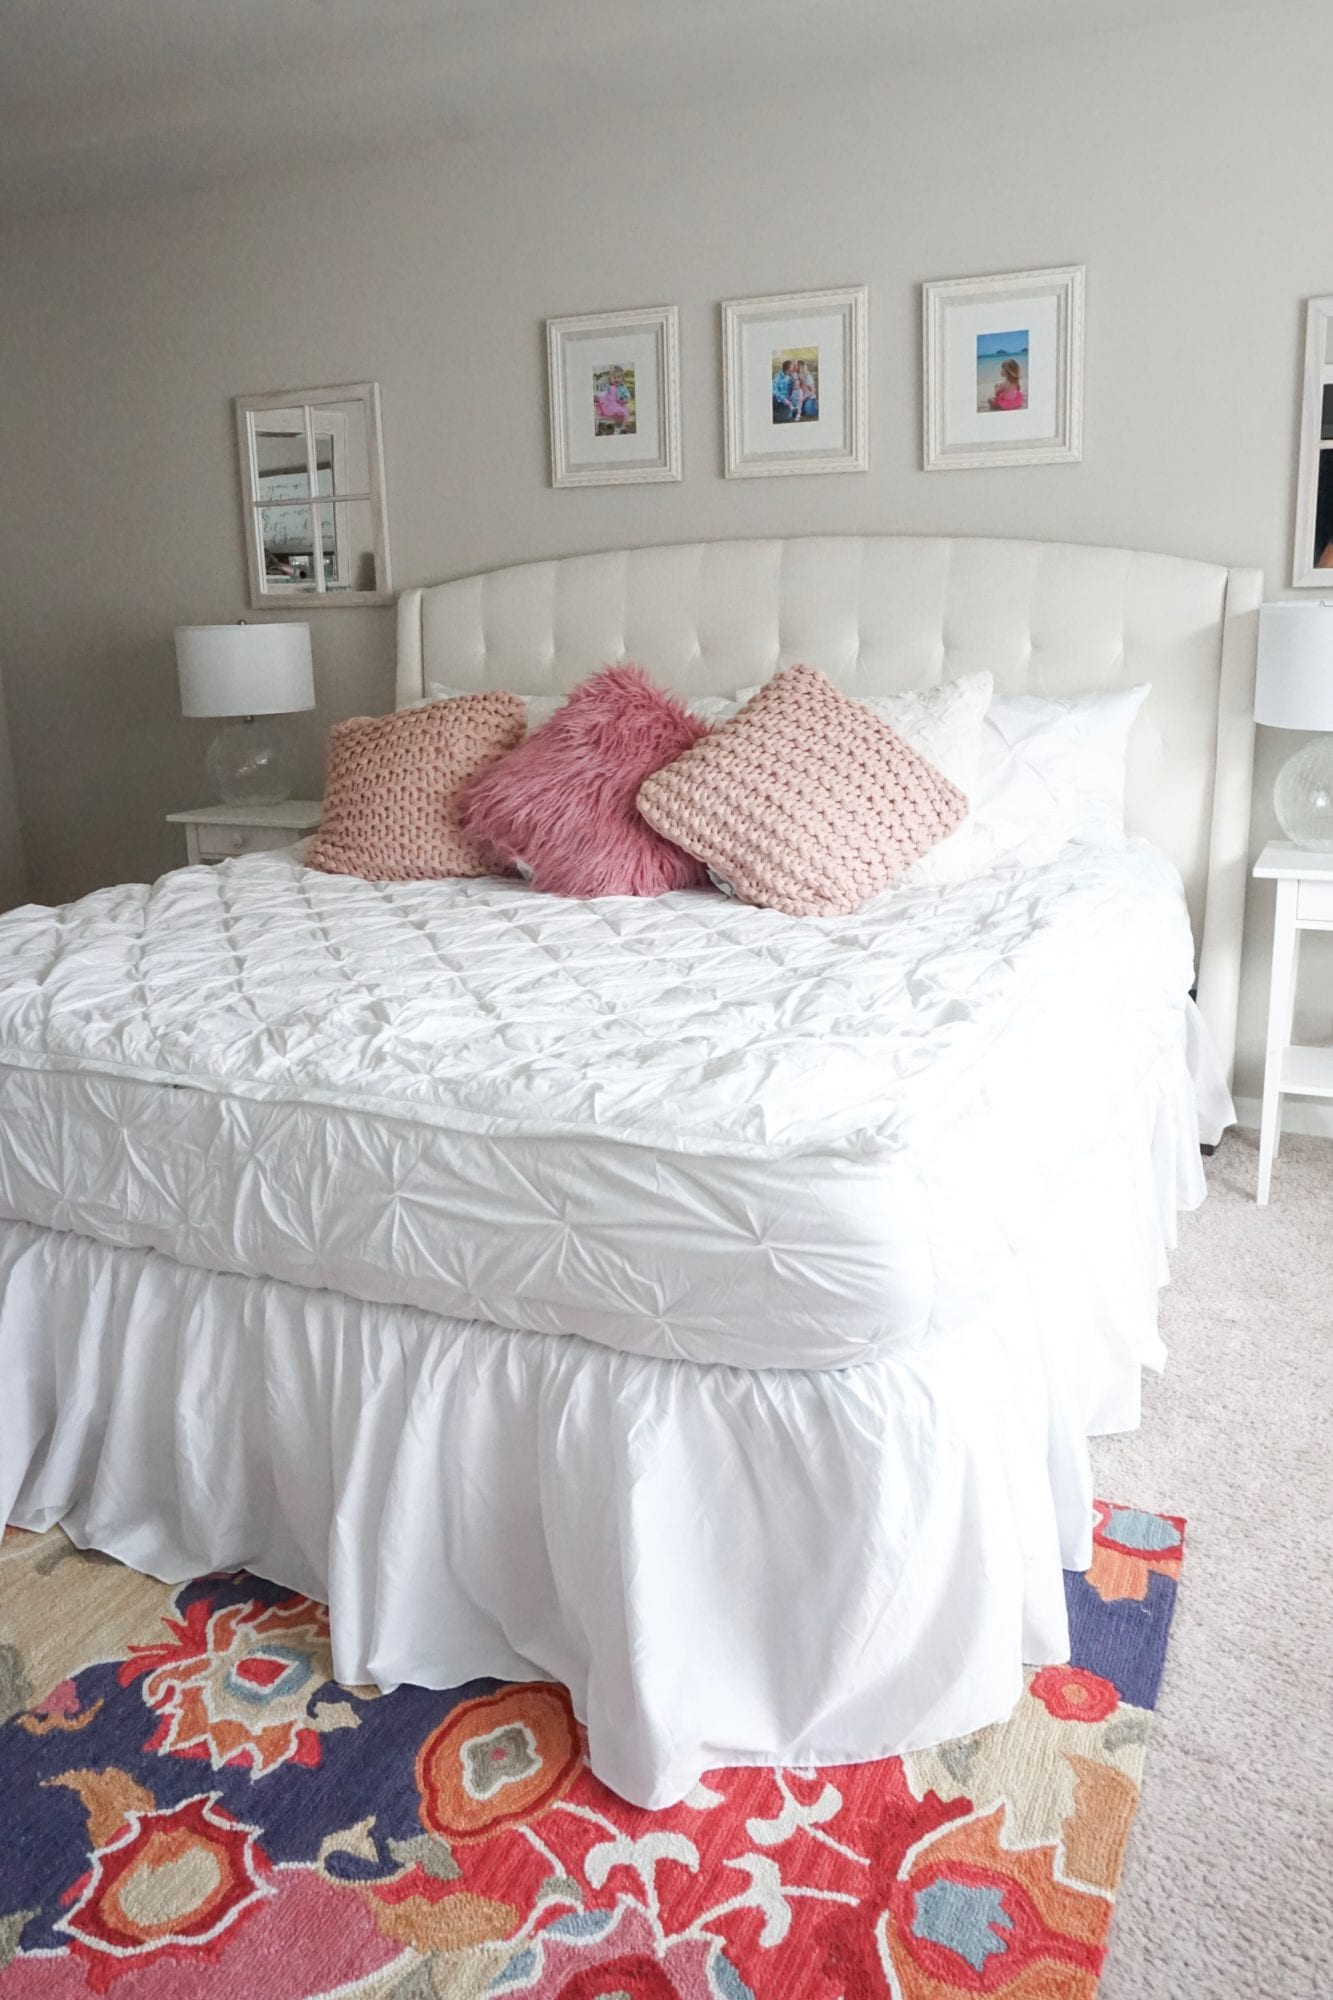 Beddy S All In One Zip Up Bedding A Review The House